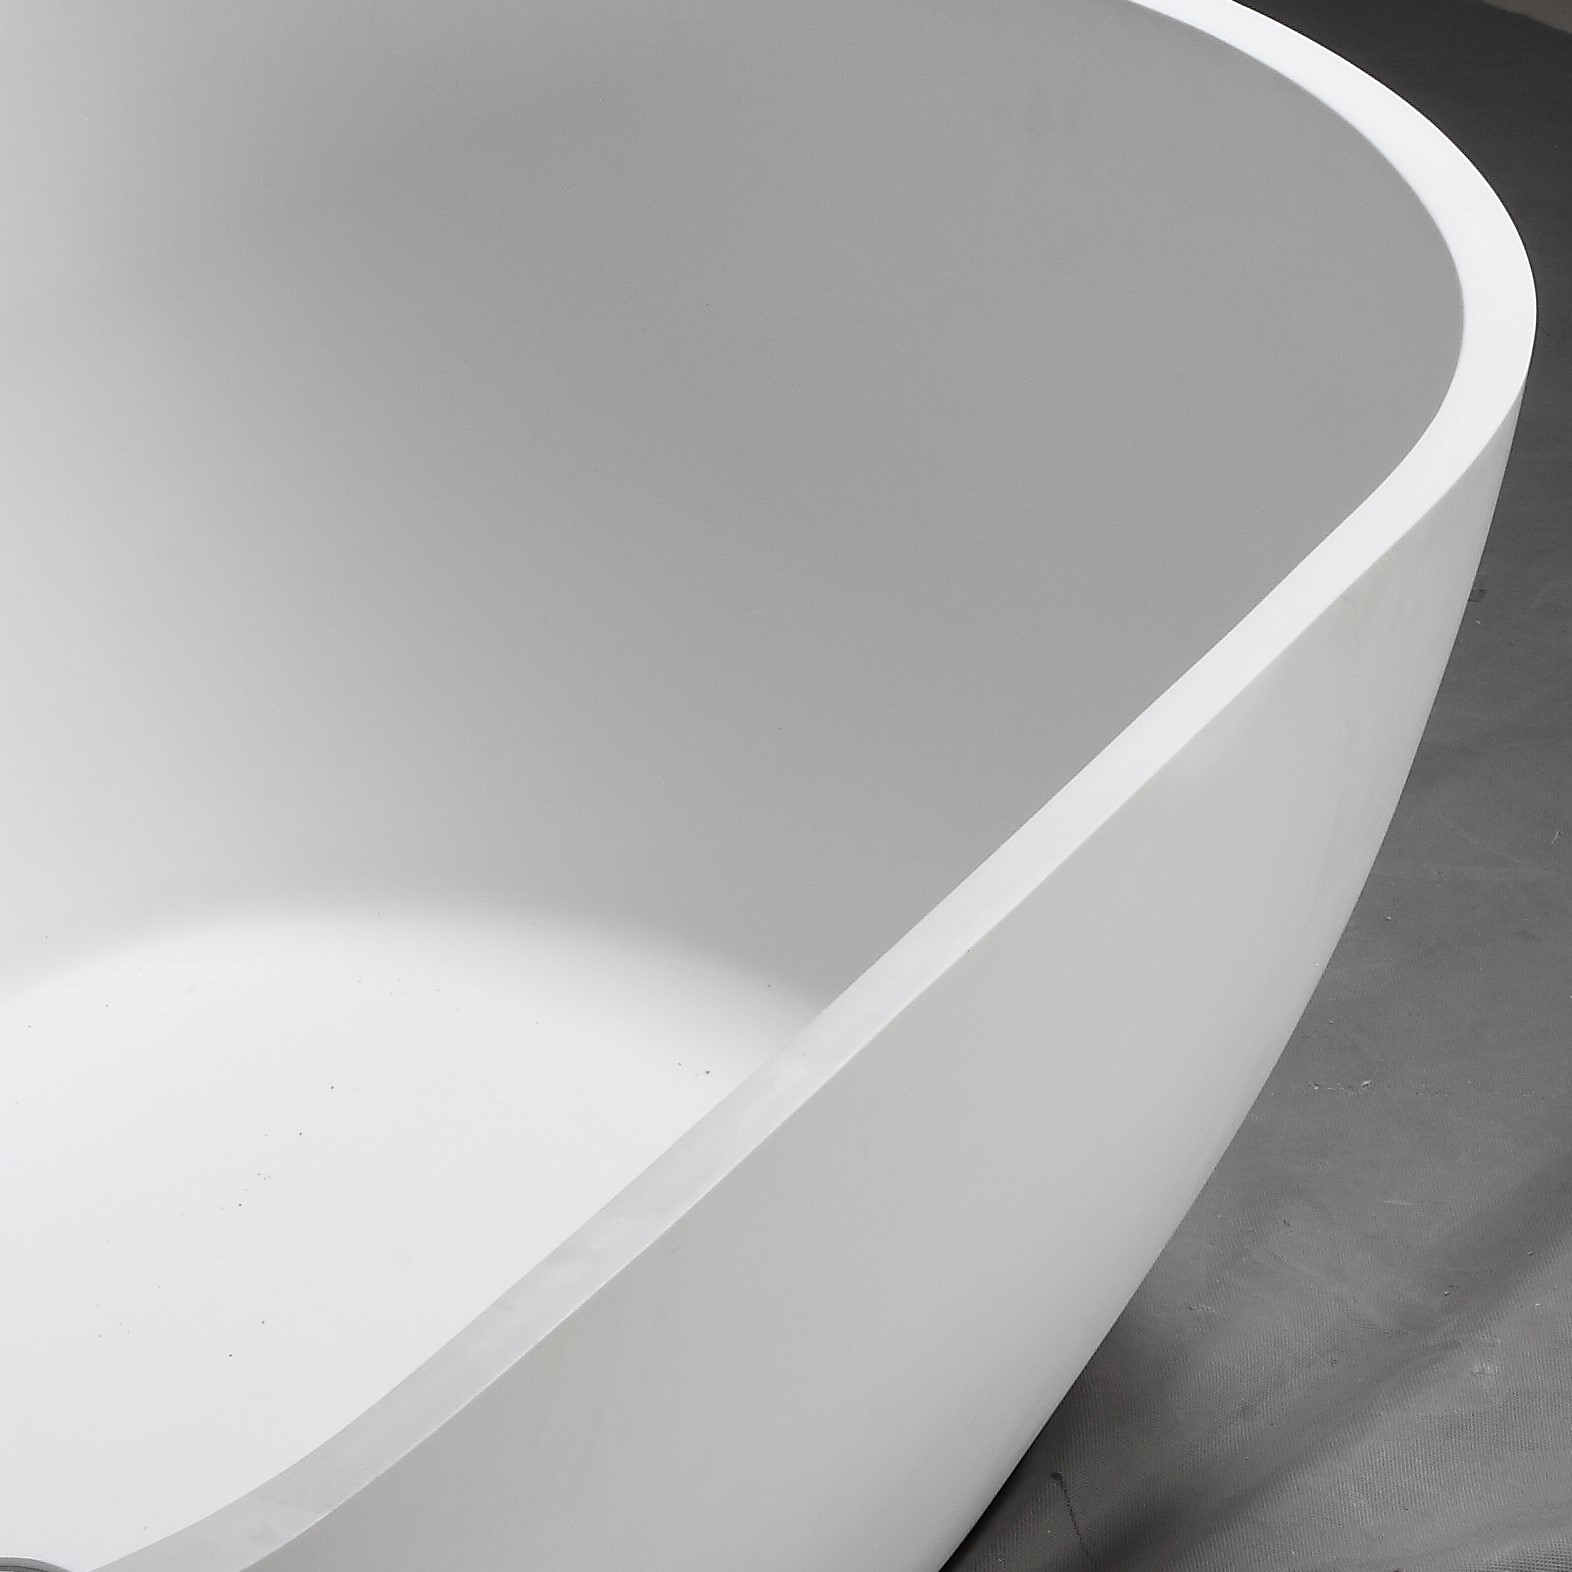 Bellissimo-Shoe Shaped Stone Resin Solid Surface freestanding bathtub-7